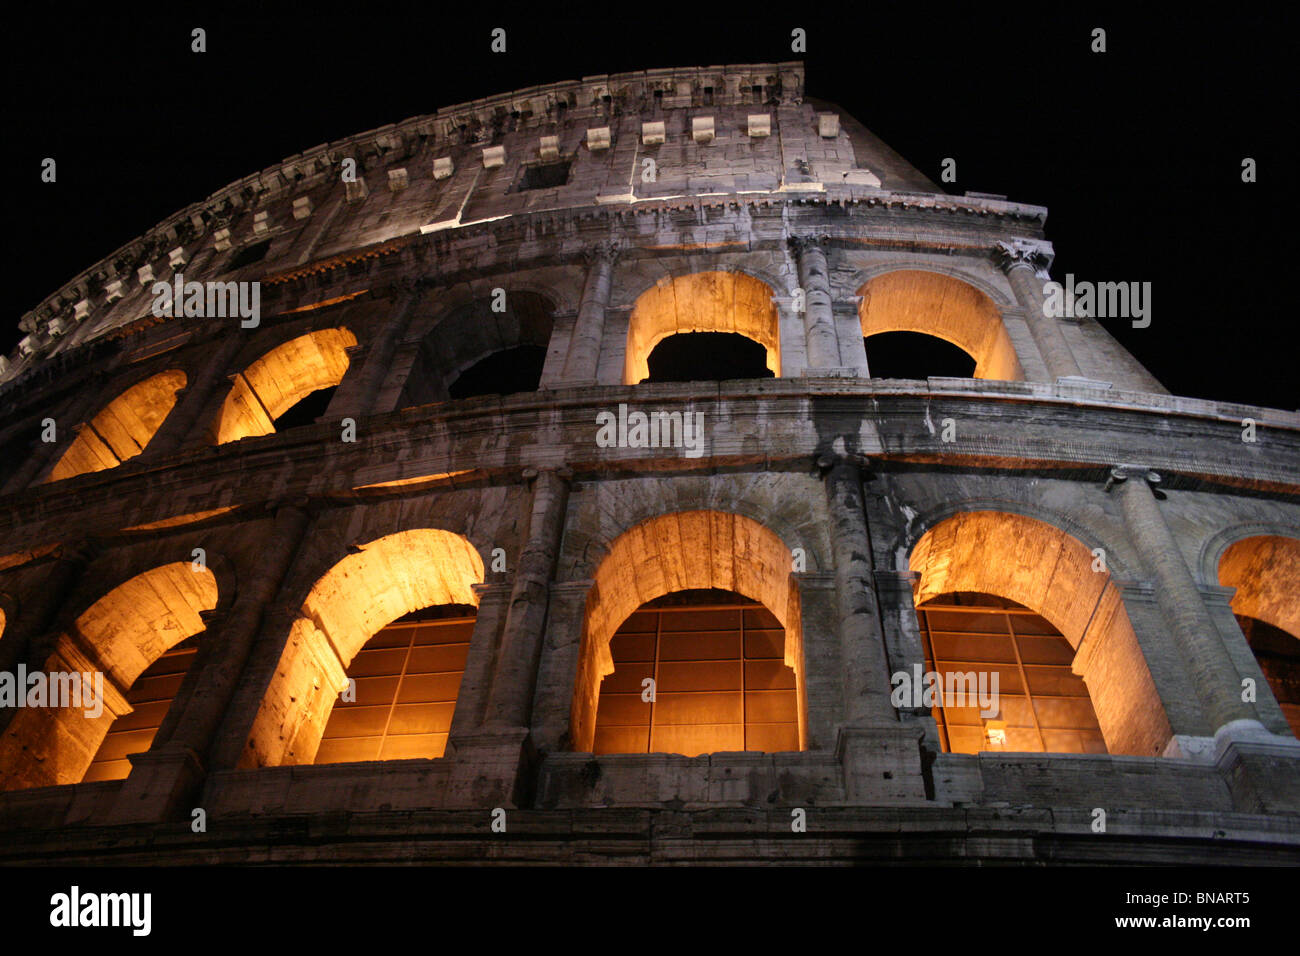 Colloseum - Stock Image